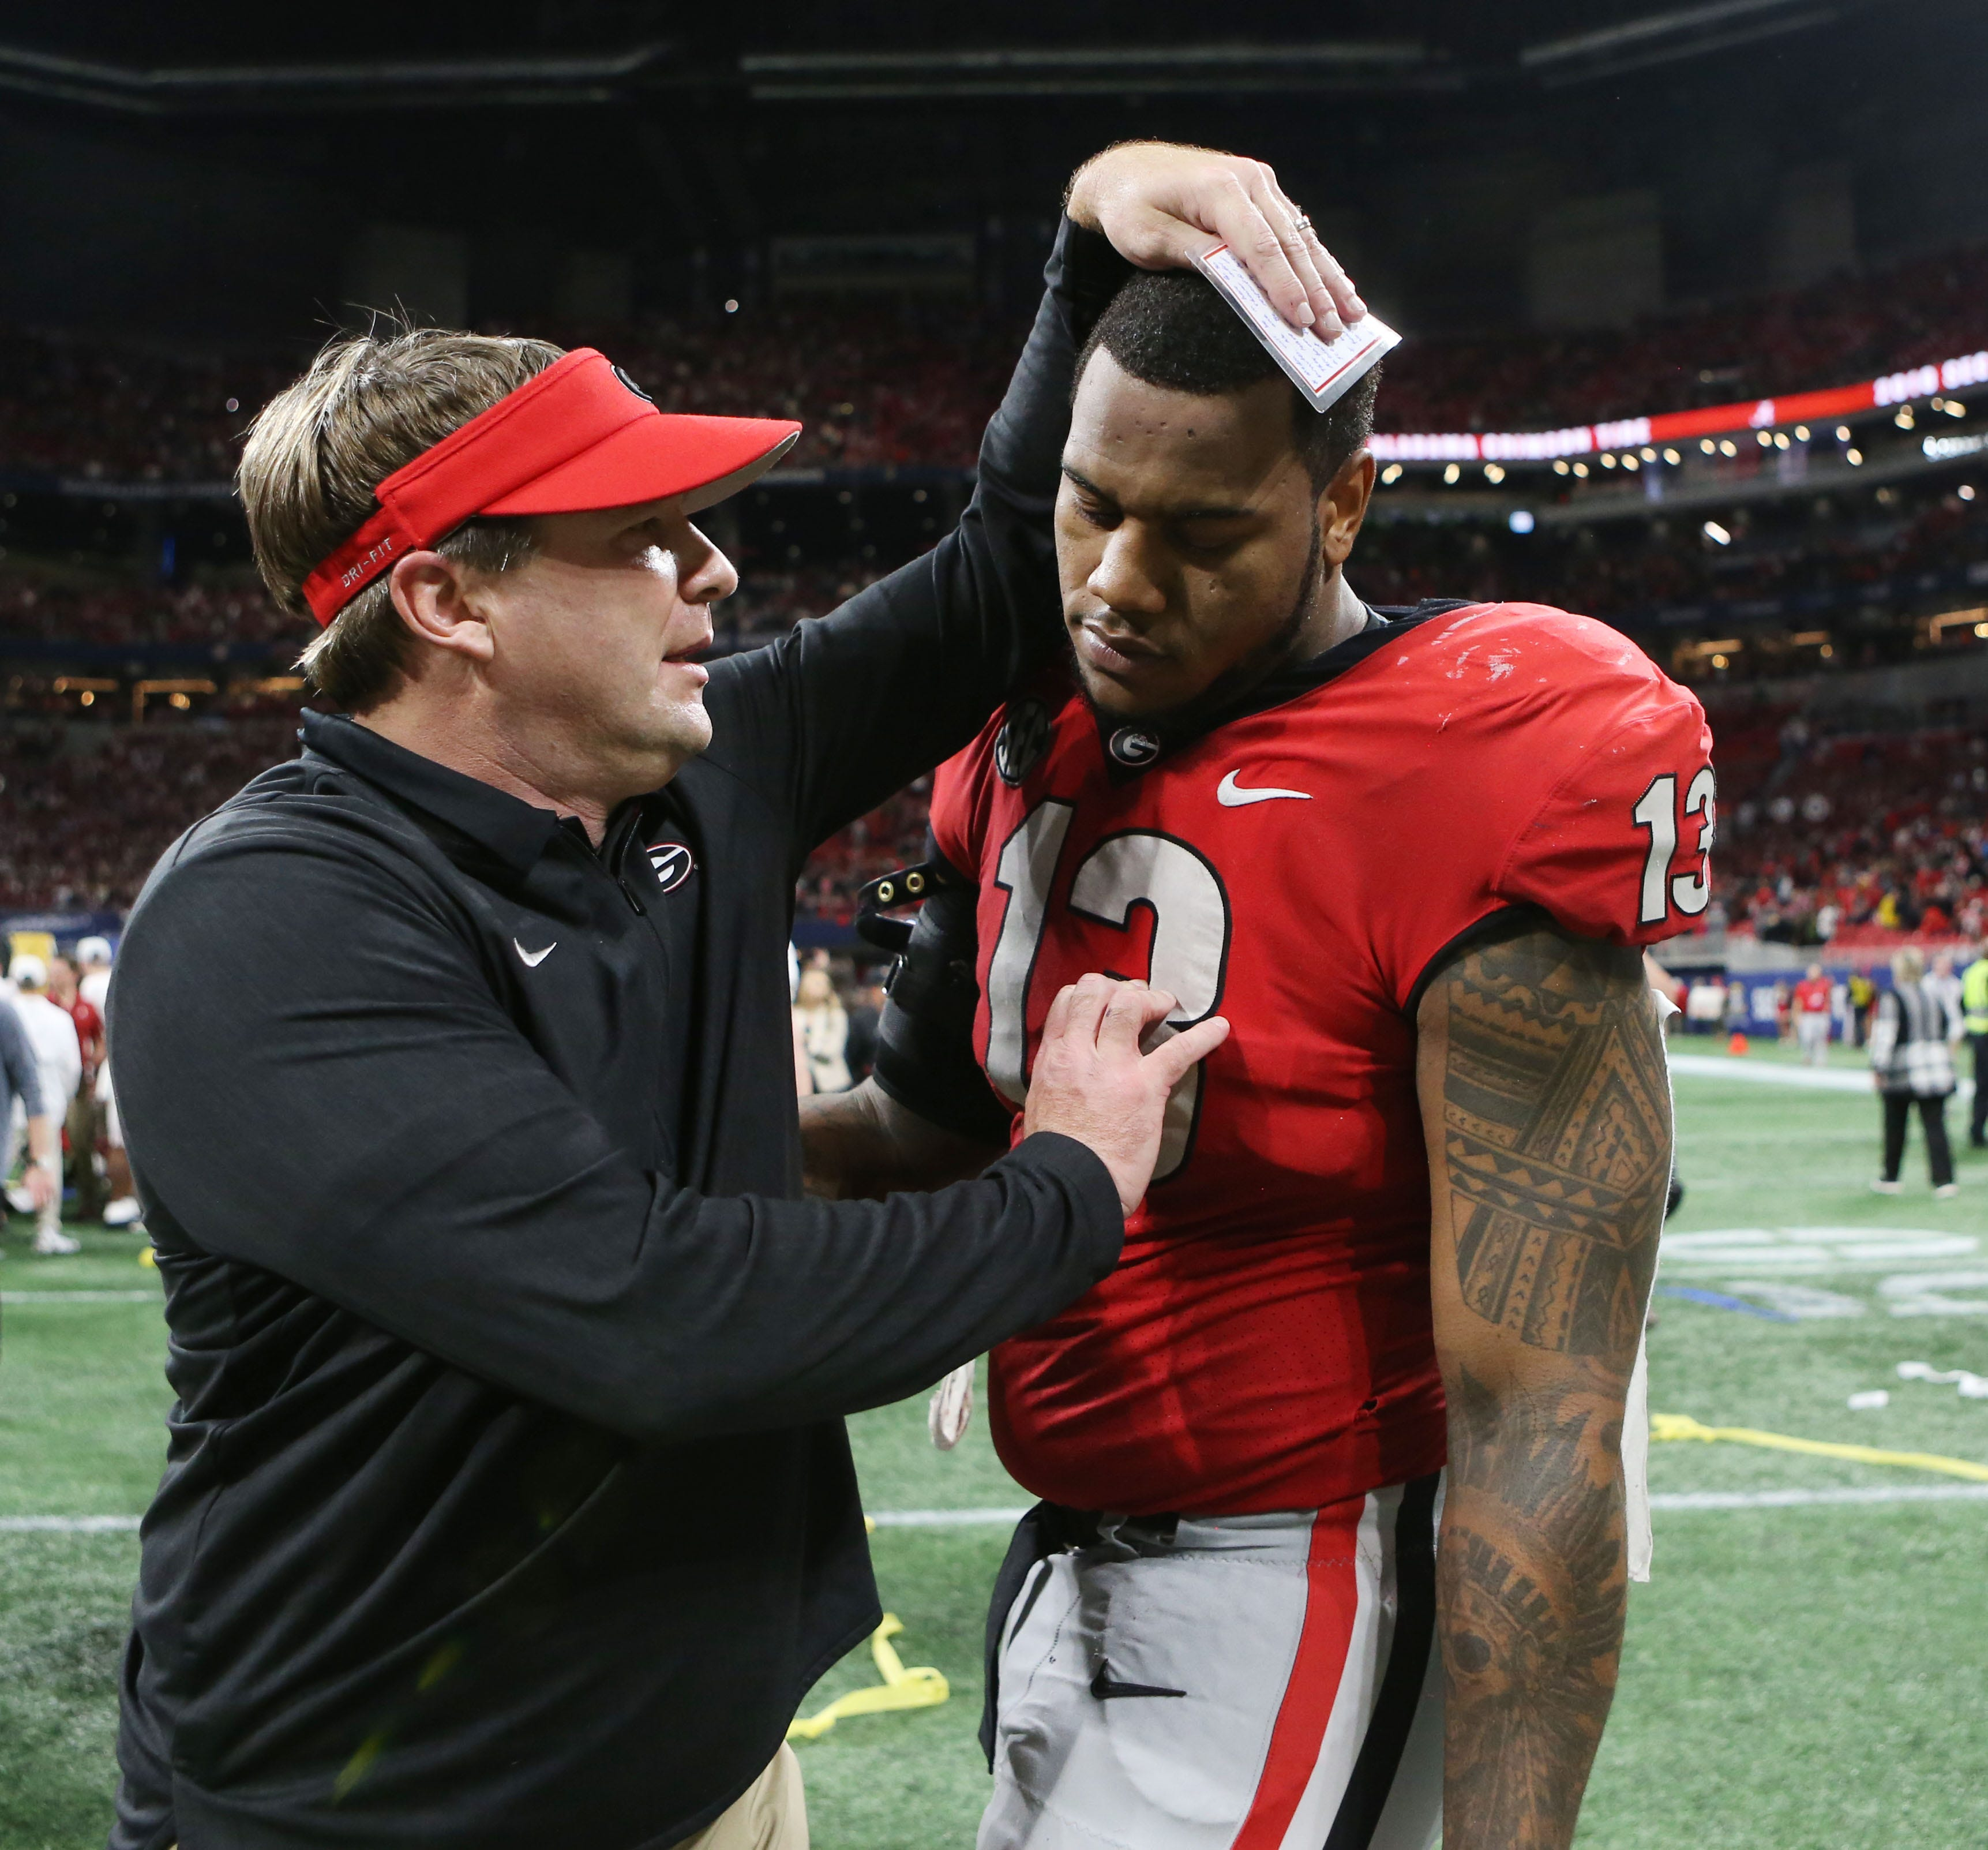 Georgia coach Kirby Smart consoles defensive end Jonathan Ledbetter after their loss to Alabama in the 2018 SEC championship game.